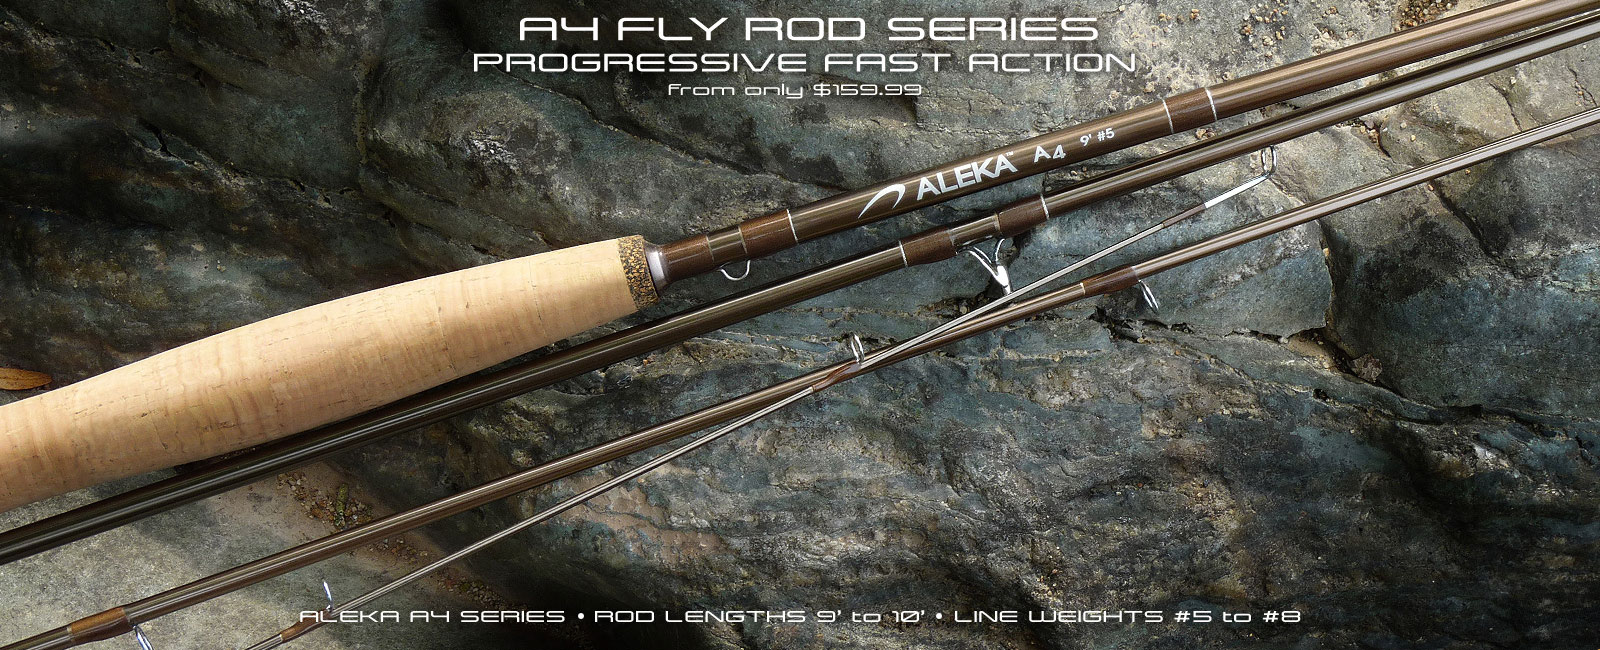 ALEKA A4 Fly Rod Series